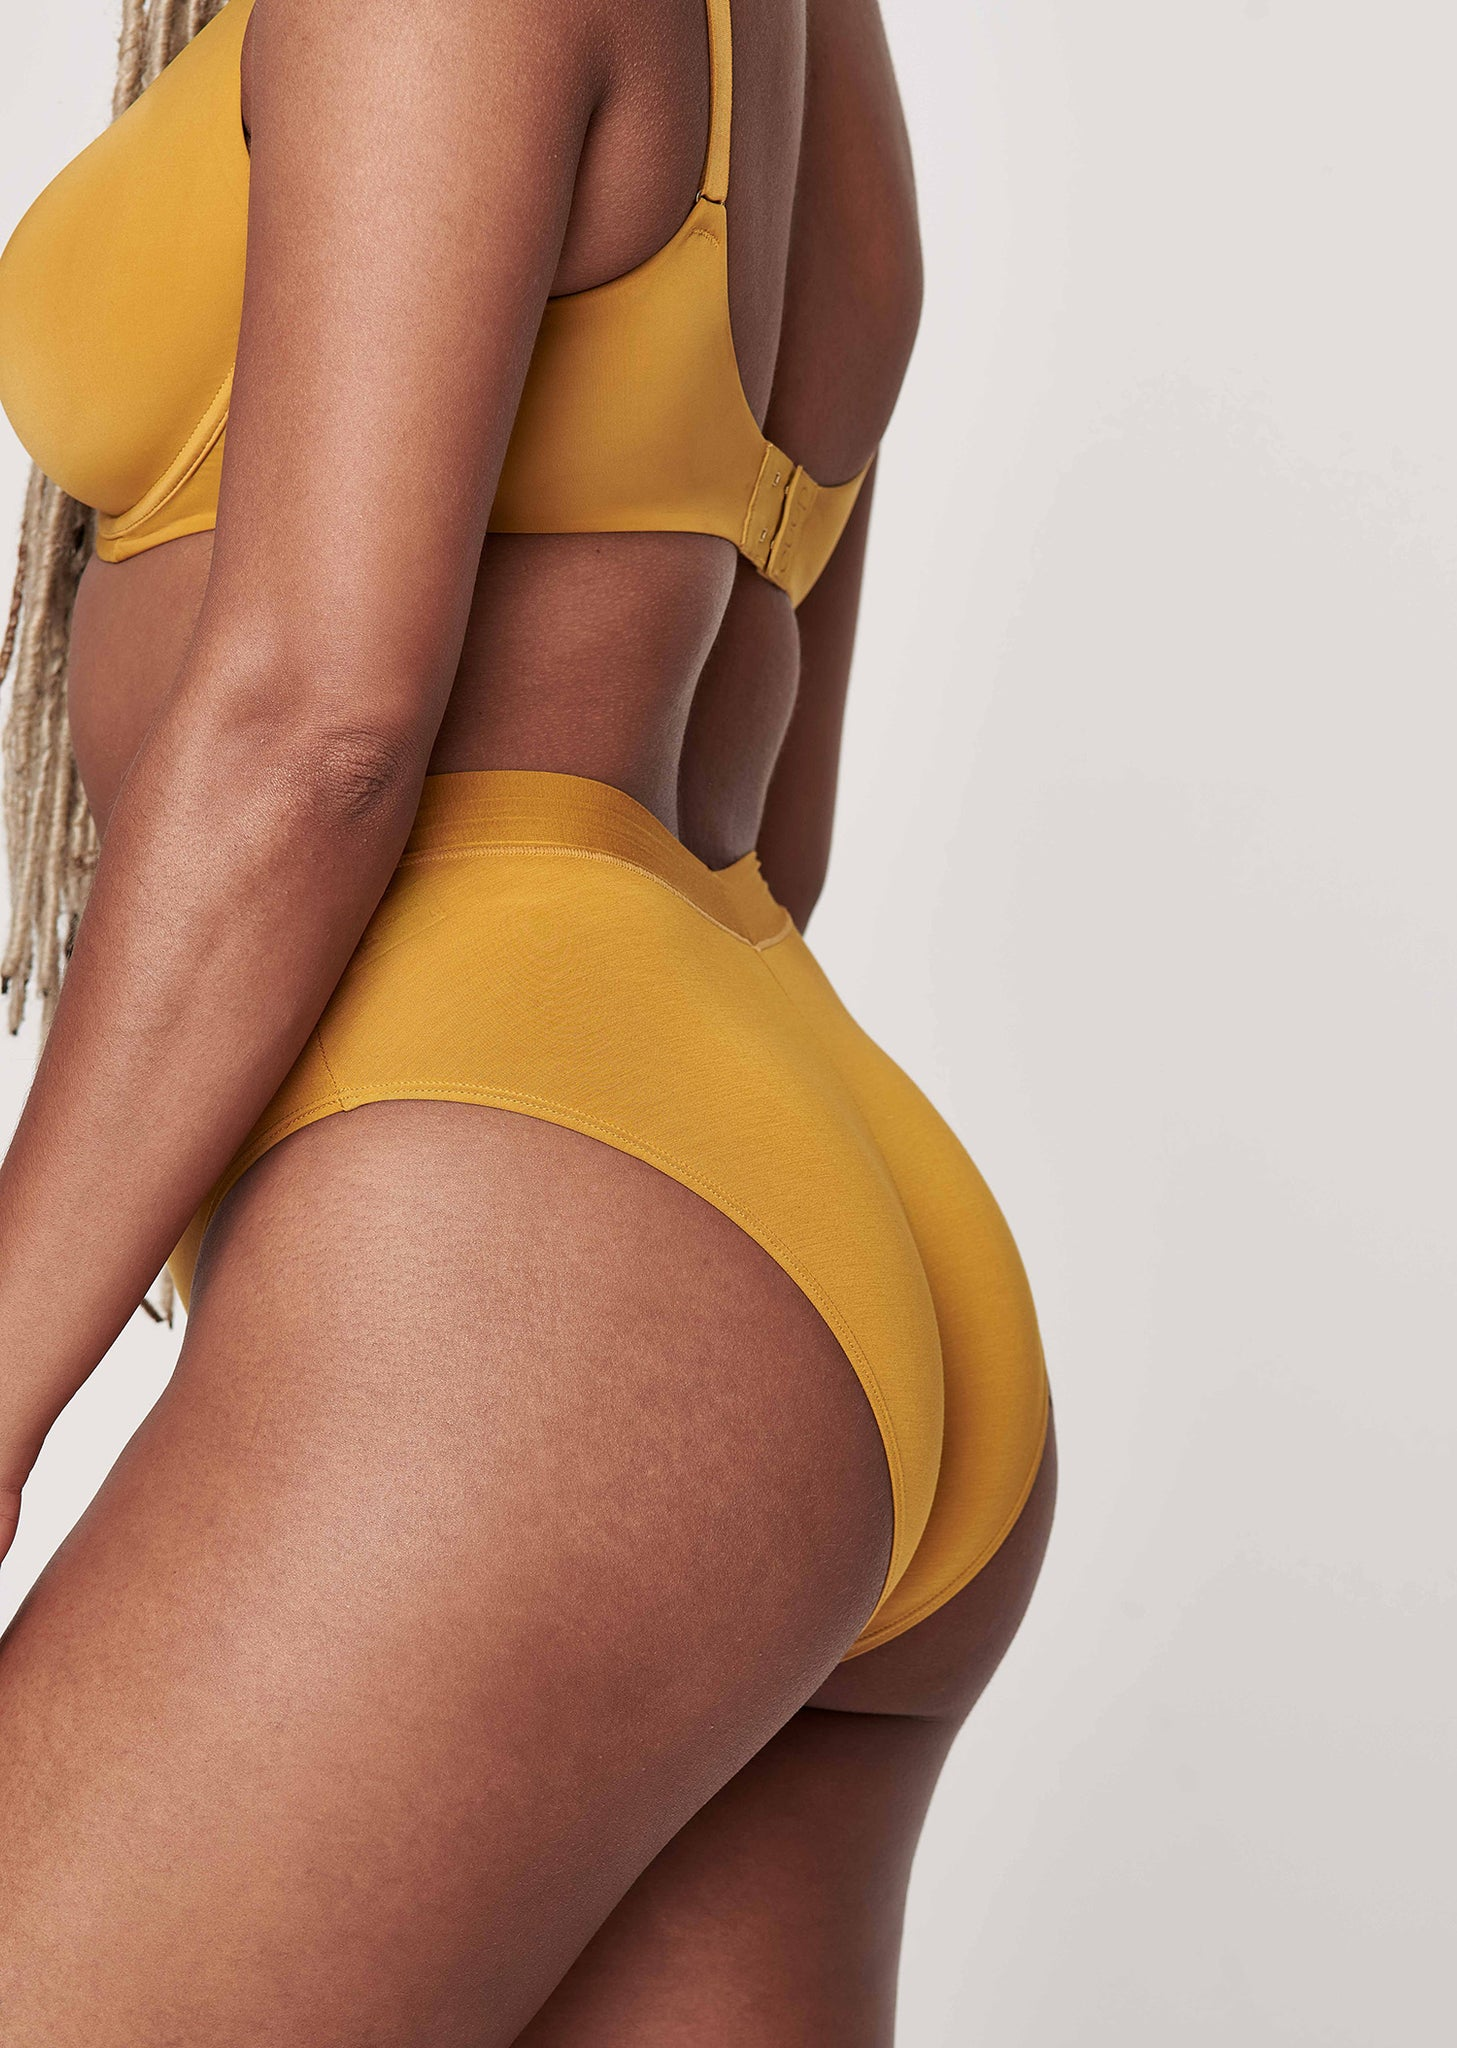 The Highwaist - Ochre - Underwear - CUUP